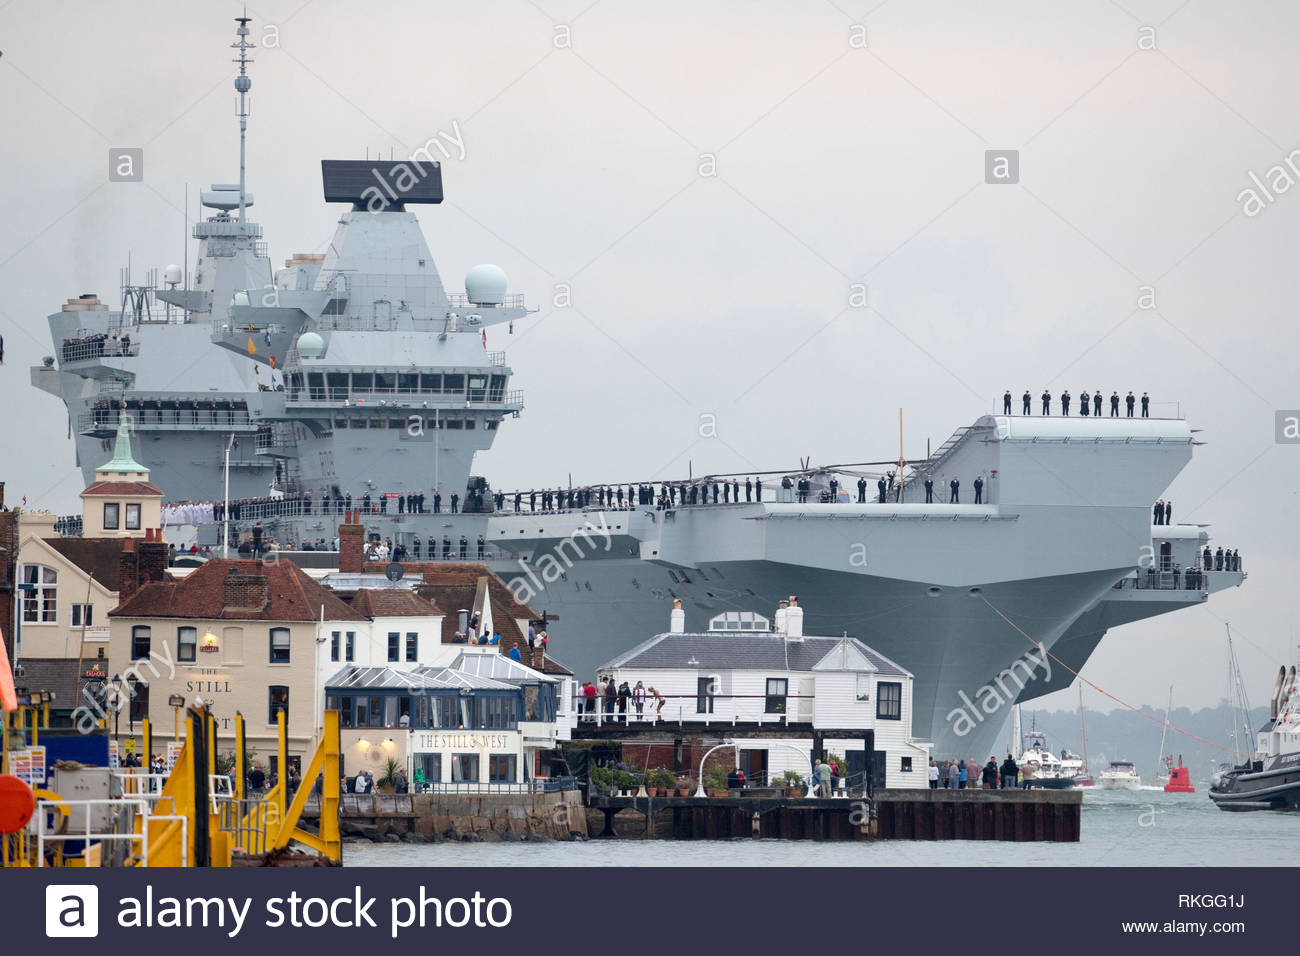 File photo dated 16/8/2017 of HMS Queen Elizabeth arriving at Portsmouth Harbour. In a speech at the Royal United Services Institute, Defence Secretary Gavin Williamson said that the carrier, embarked with UK and US F-35 jets, will be deployed on her first operational mission to the Mediterranean, the Middle East and the Pacific region - where Beijing has been involved in a dispute over navigation rights and territorial claims in the South China Sea. - Stock Image